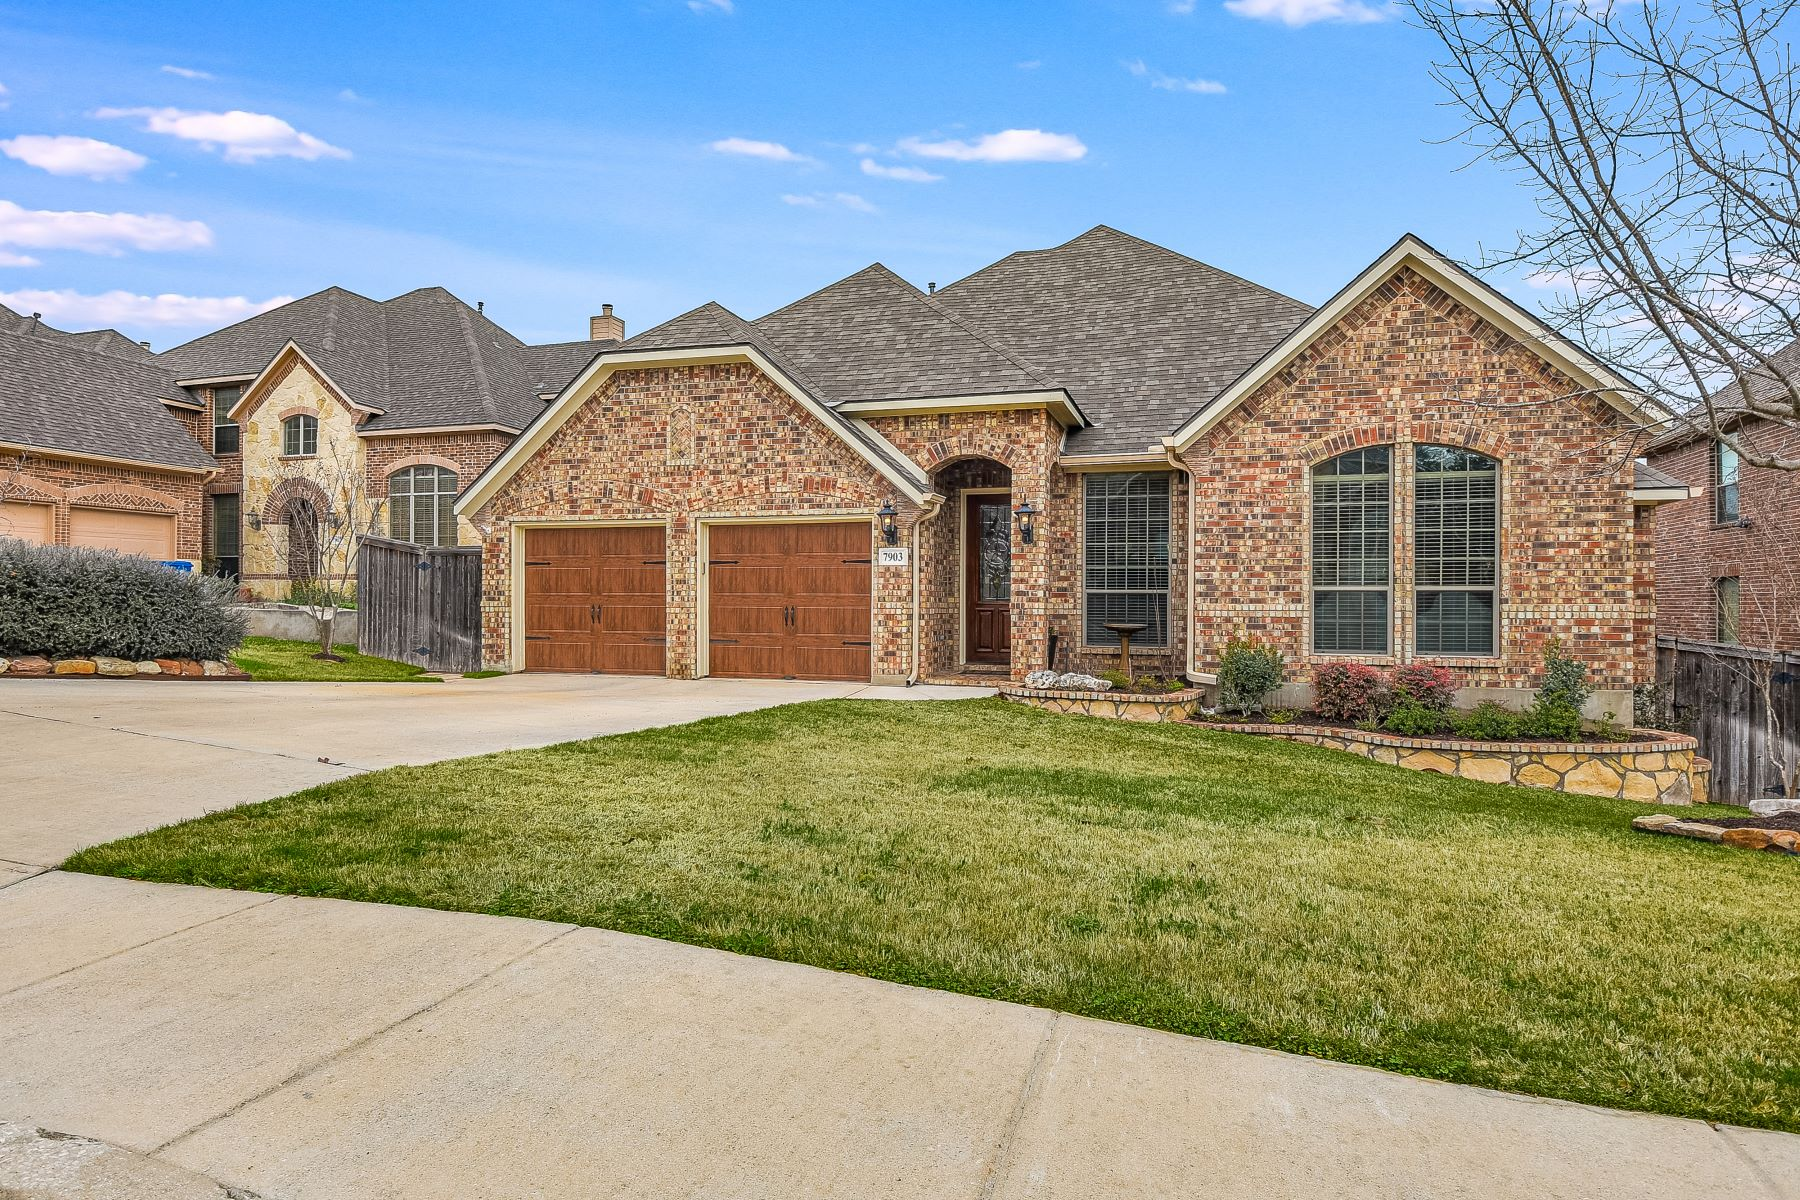 Single Family Homes for Sale at Immaculate One Story Home 7903 Hermosa Hill San Antonio, Texas 78256 United States